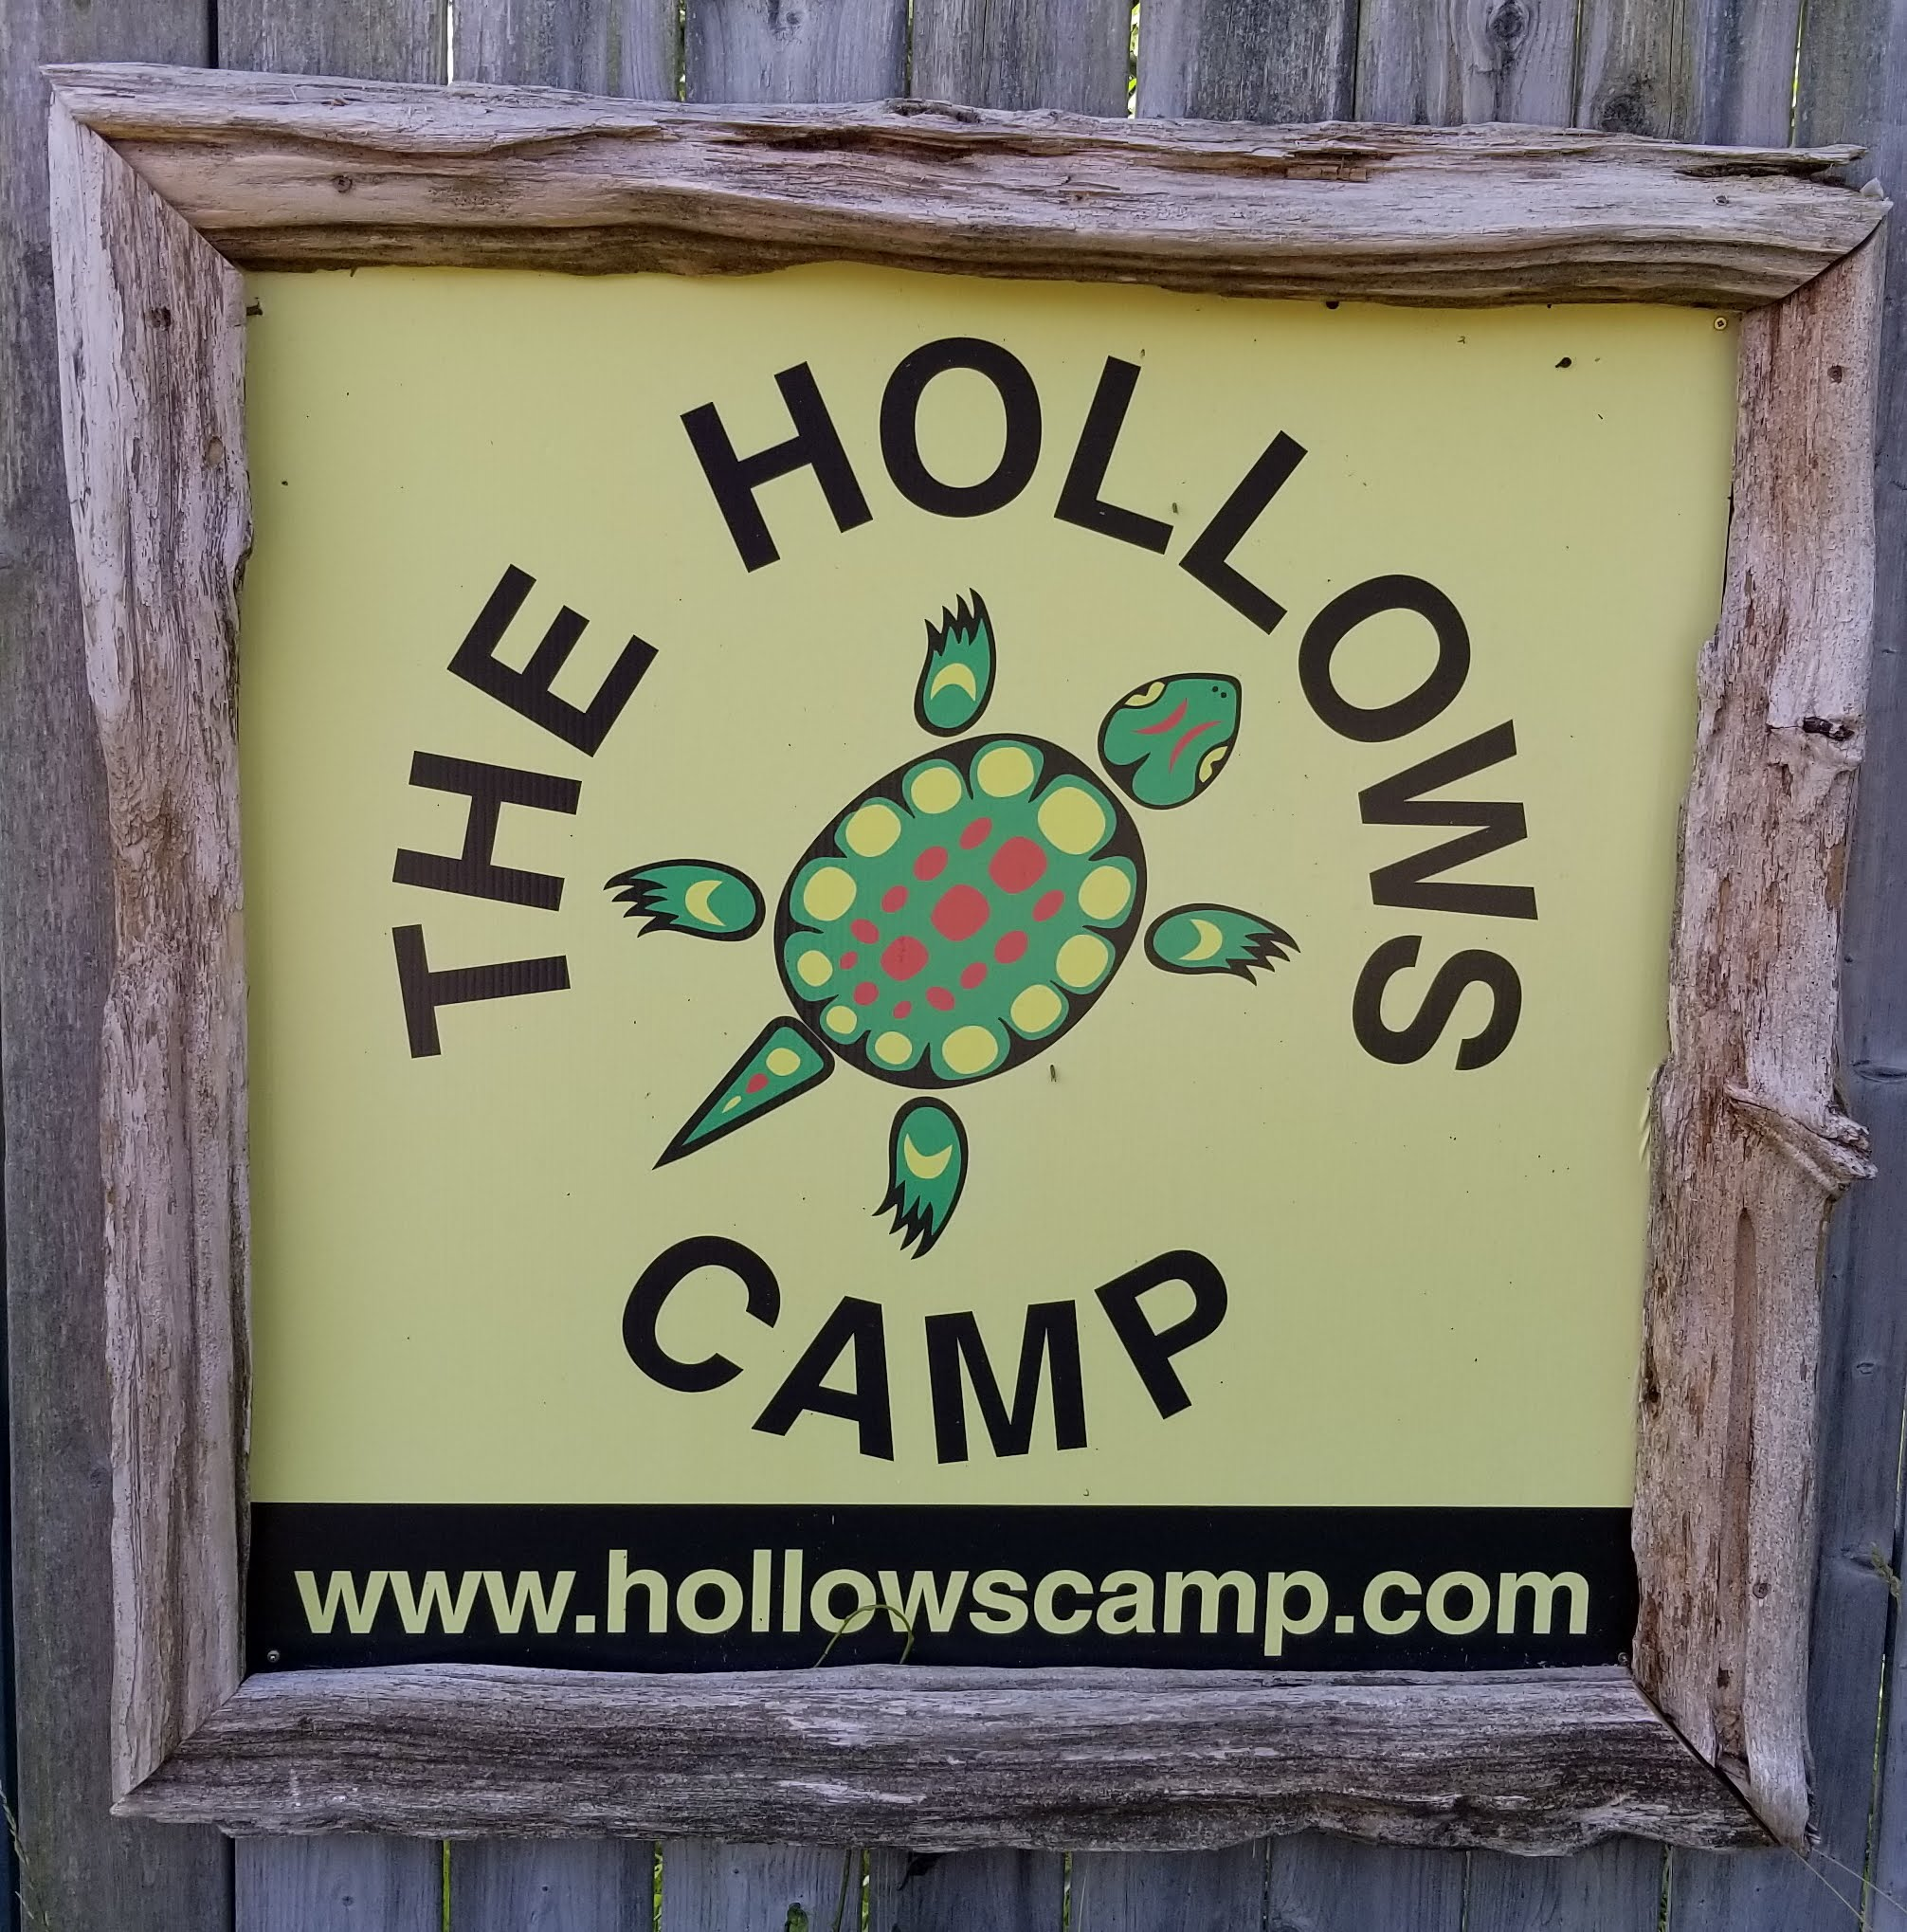 The Hollows Camp front entrance sign and logo